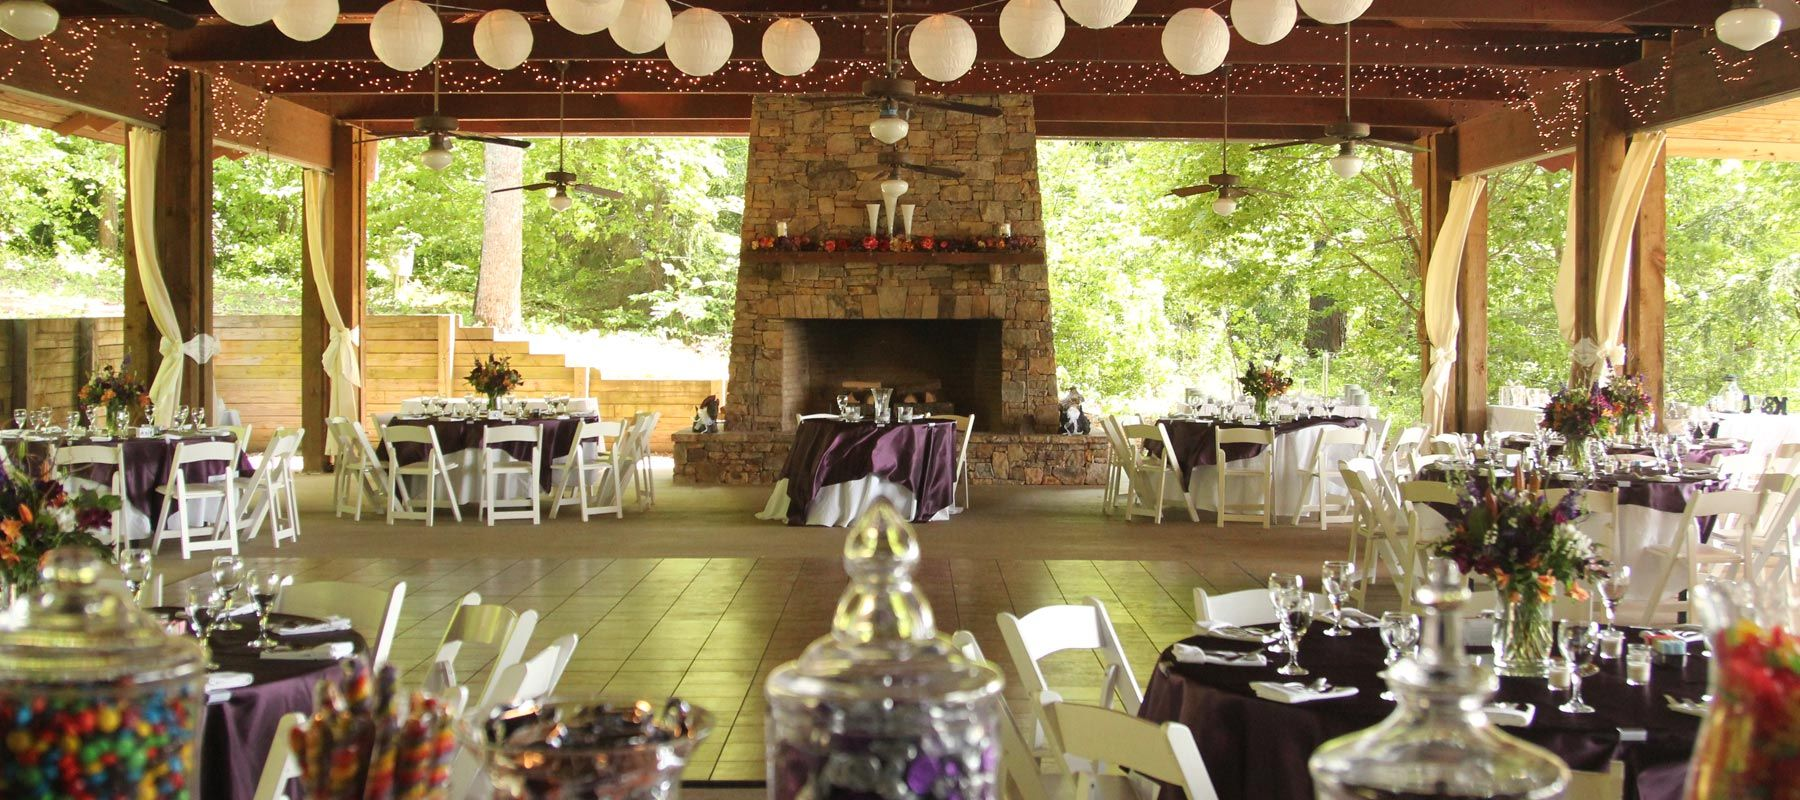 how to open a wedding venue business